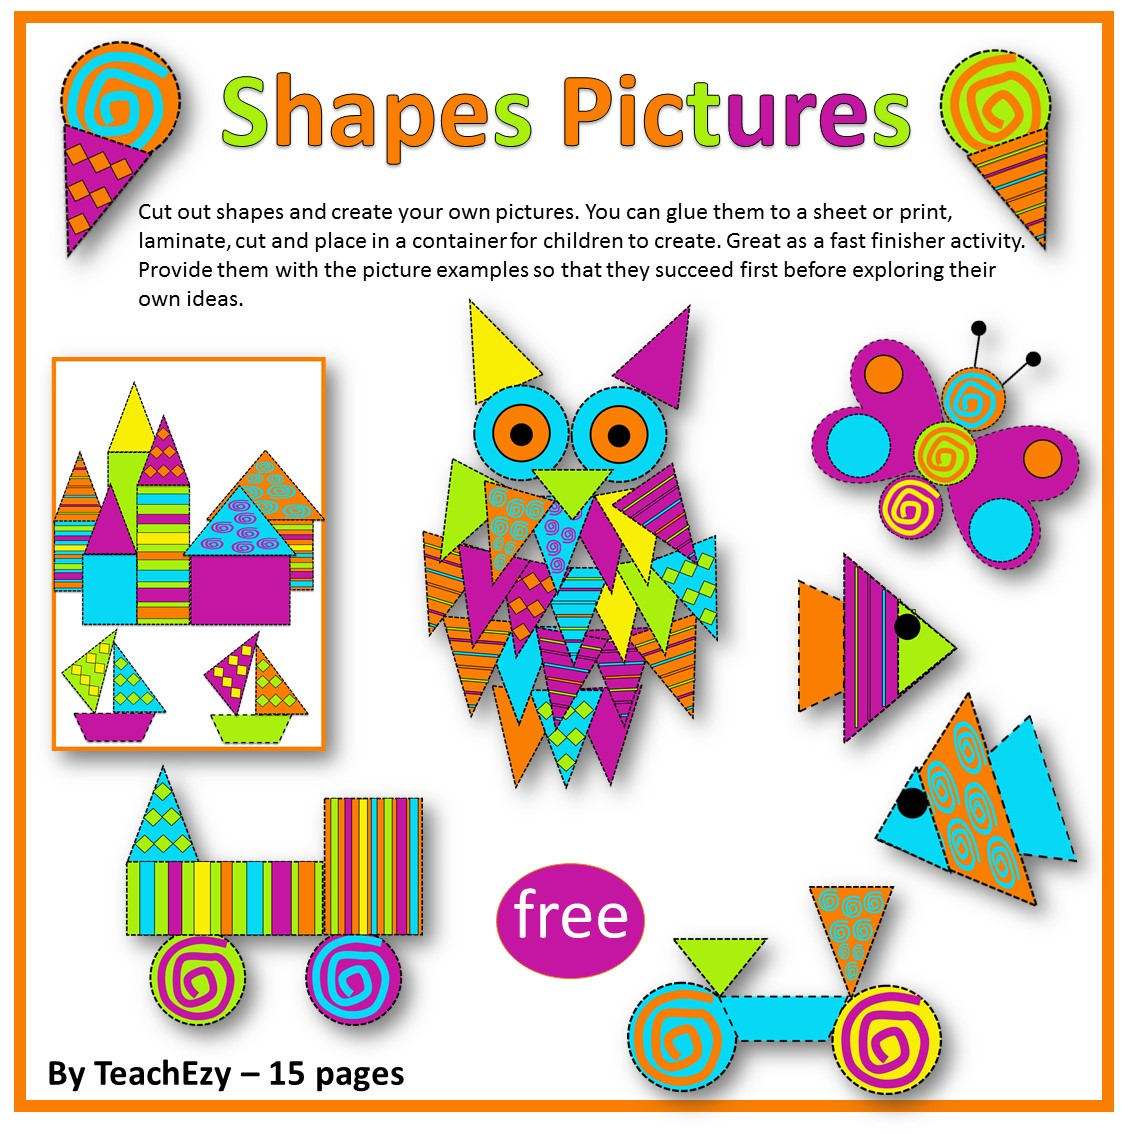 Shape pictures free resource